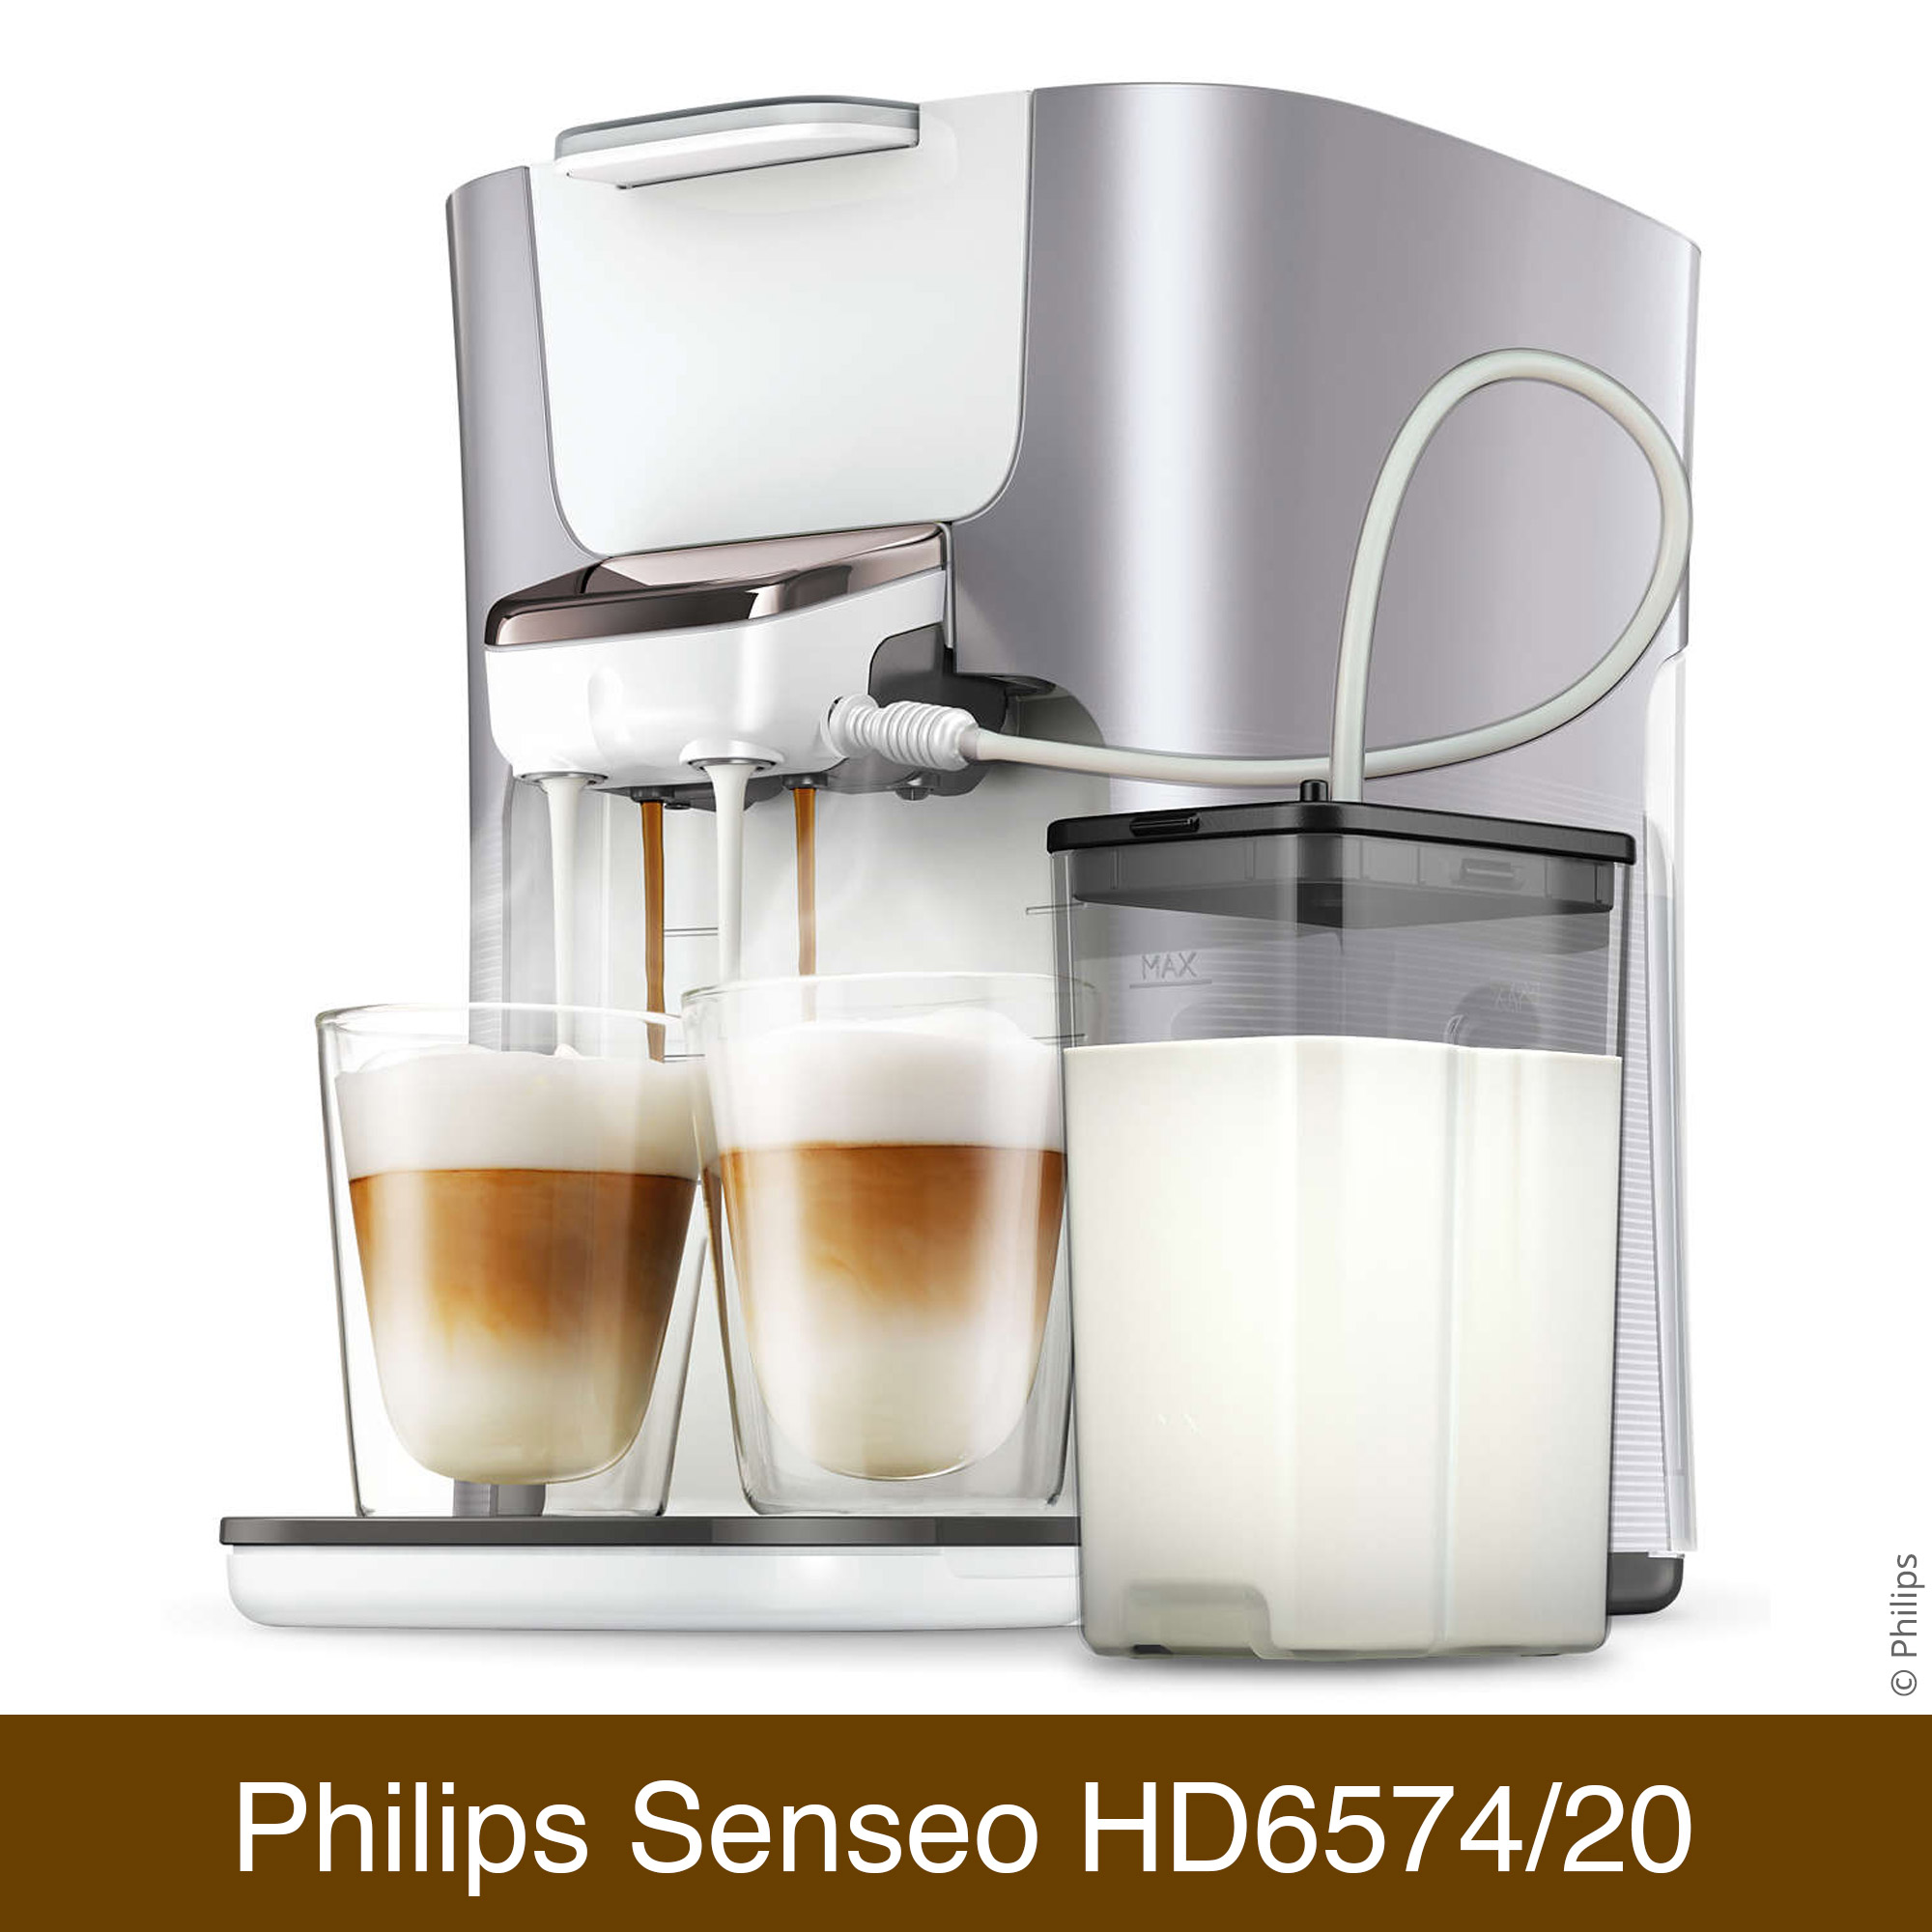 philips senseo hd6574 20 latte duo vergleich kaffeepadmaschine. Black Bedroom Furniture Sets. Home Design Ideas